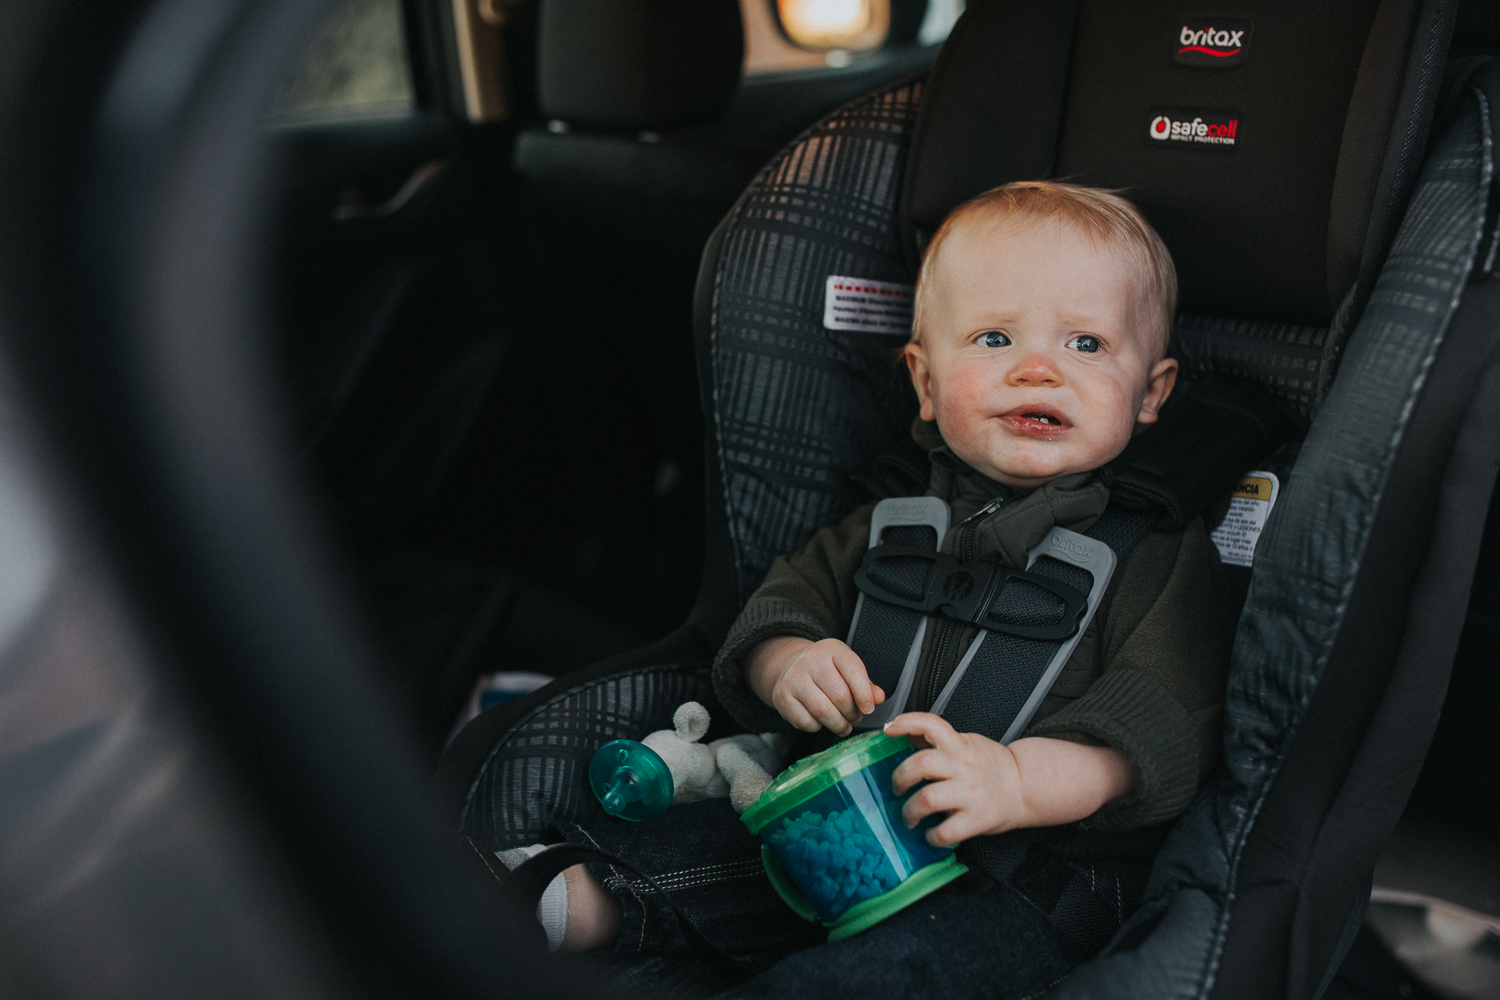 1 year old toddler boy eating snack in carseat - Stouffville child photography